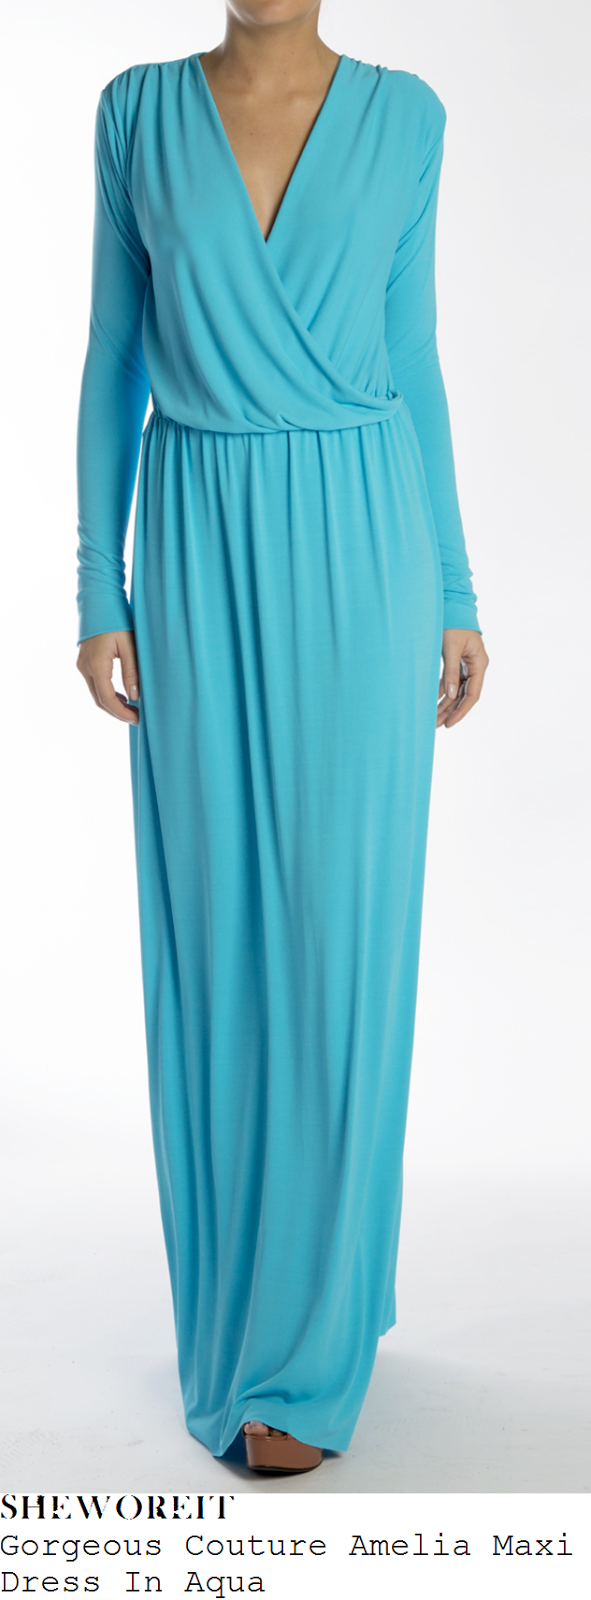 brooke-vincent-aqua-turquoise-long-sleeve-cross-over-front-draped-maxi-dress